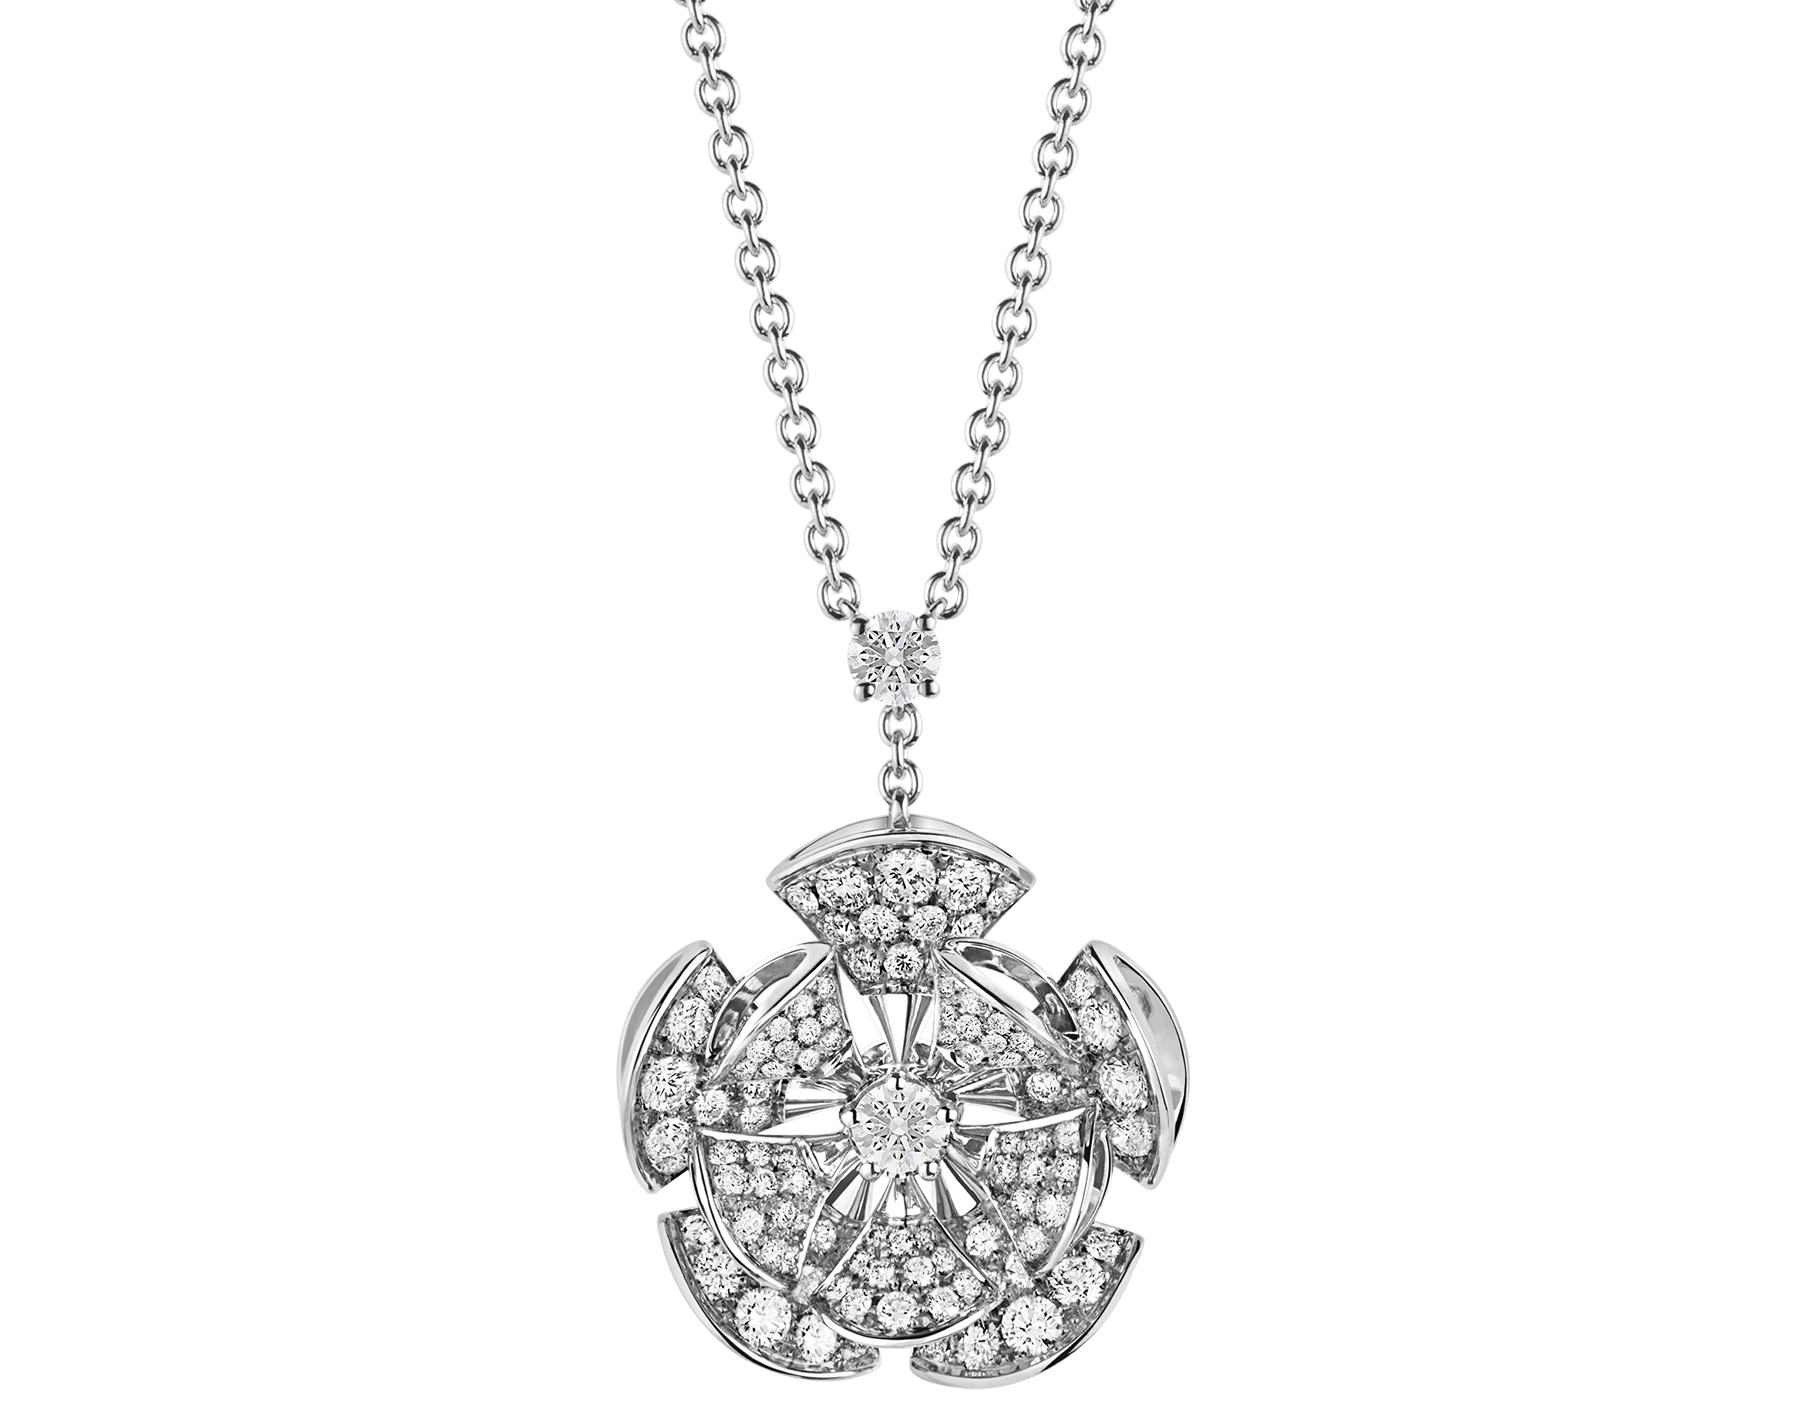 DIVAS' DREAM necklace in 18 kt white gold with a diamond on the chain and 18 kt white gold pendant set with central diamond and full pavé diamonds. 350854 image 1